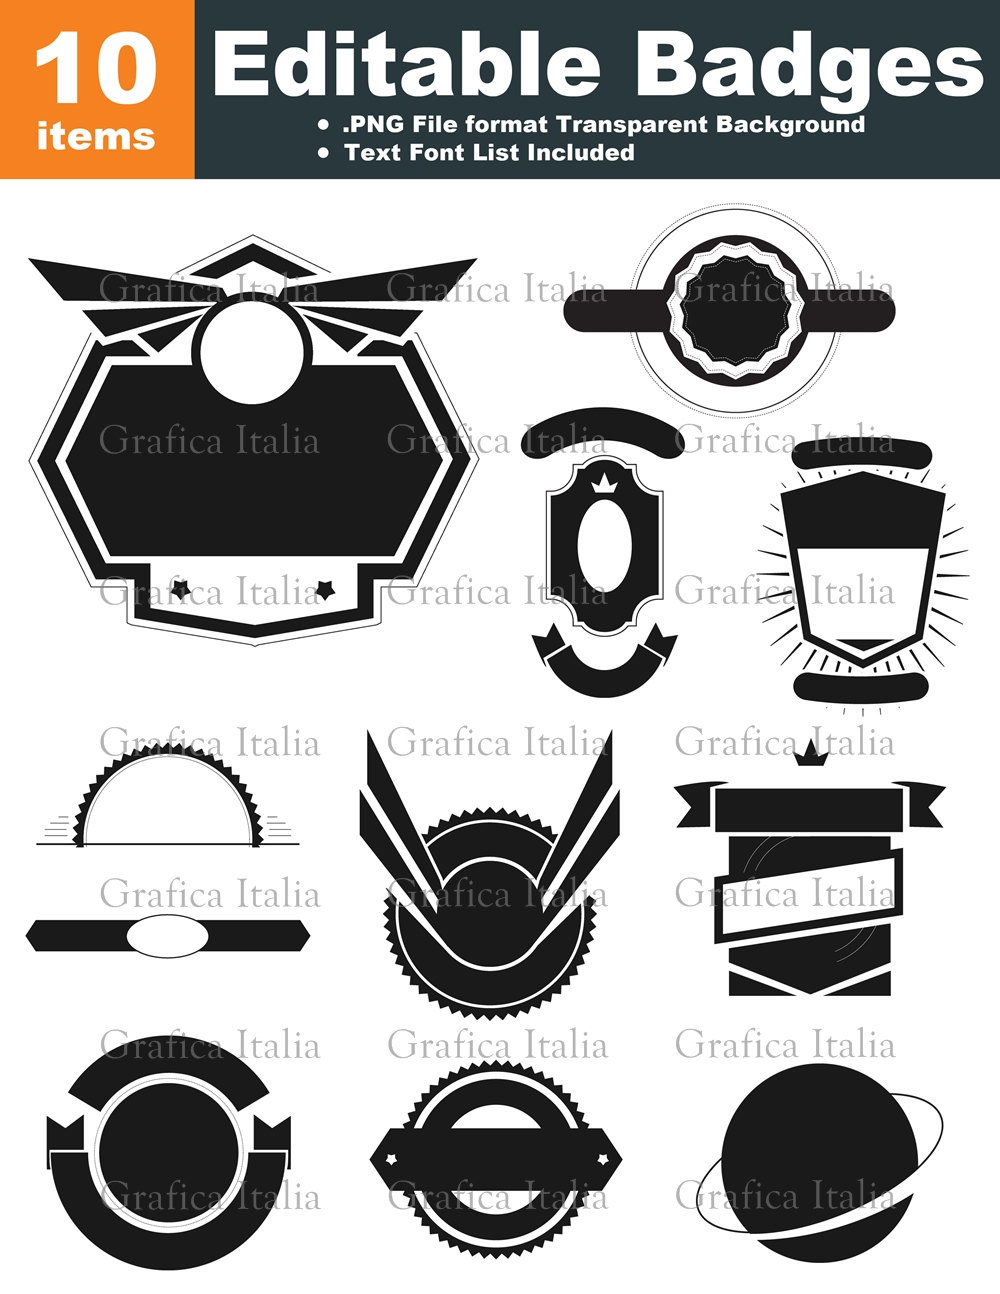 retro blank badge logo templates 10 graphic designs editable text clipart digital download. Black Bedroom Furniture Sets. Home Design Ideas